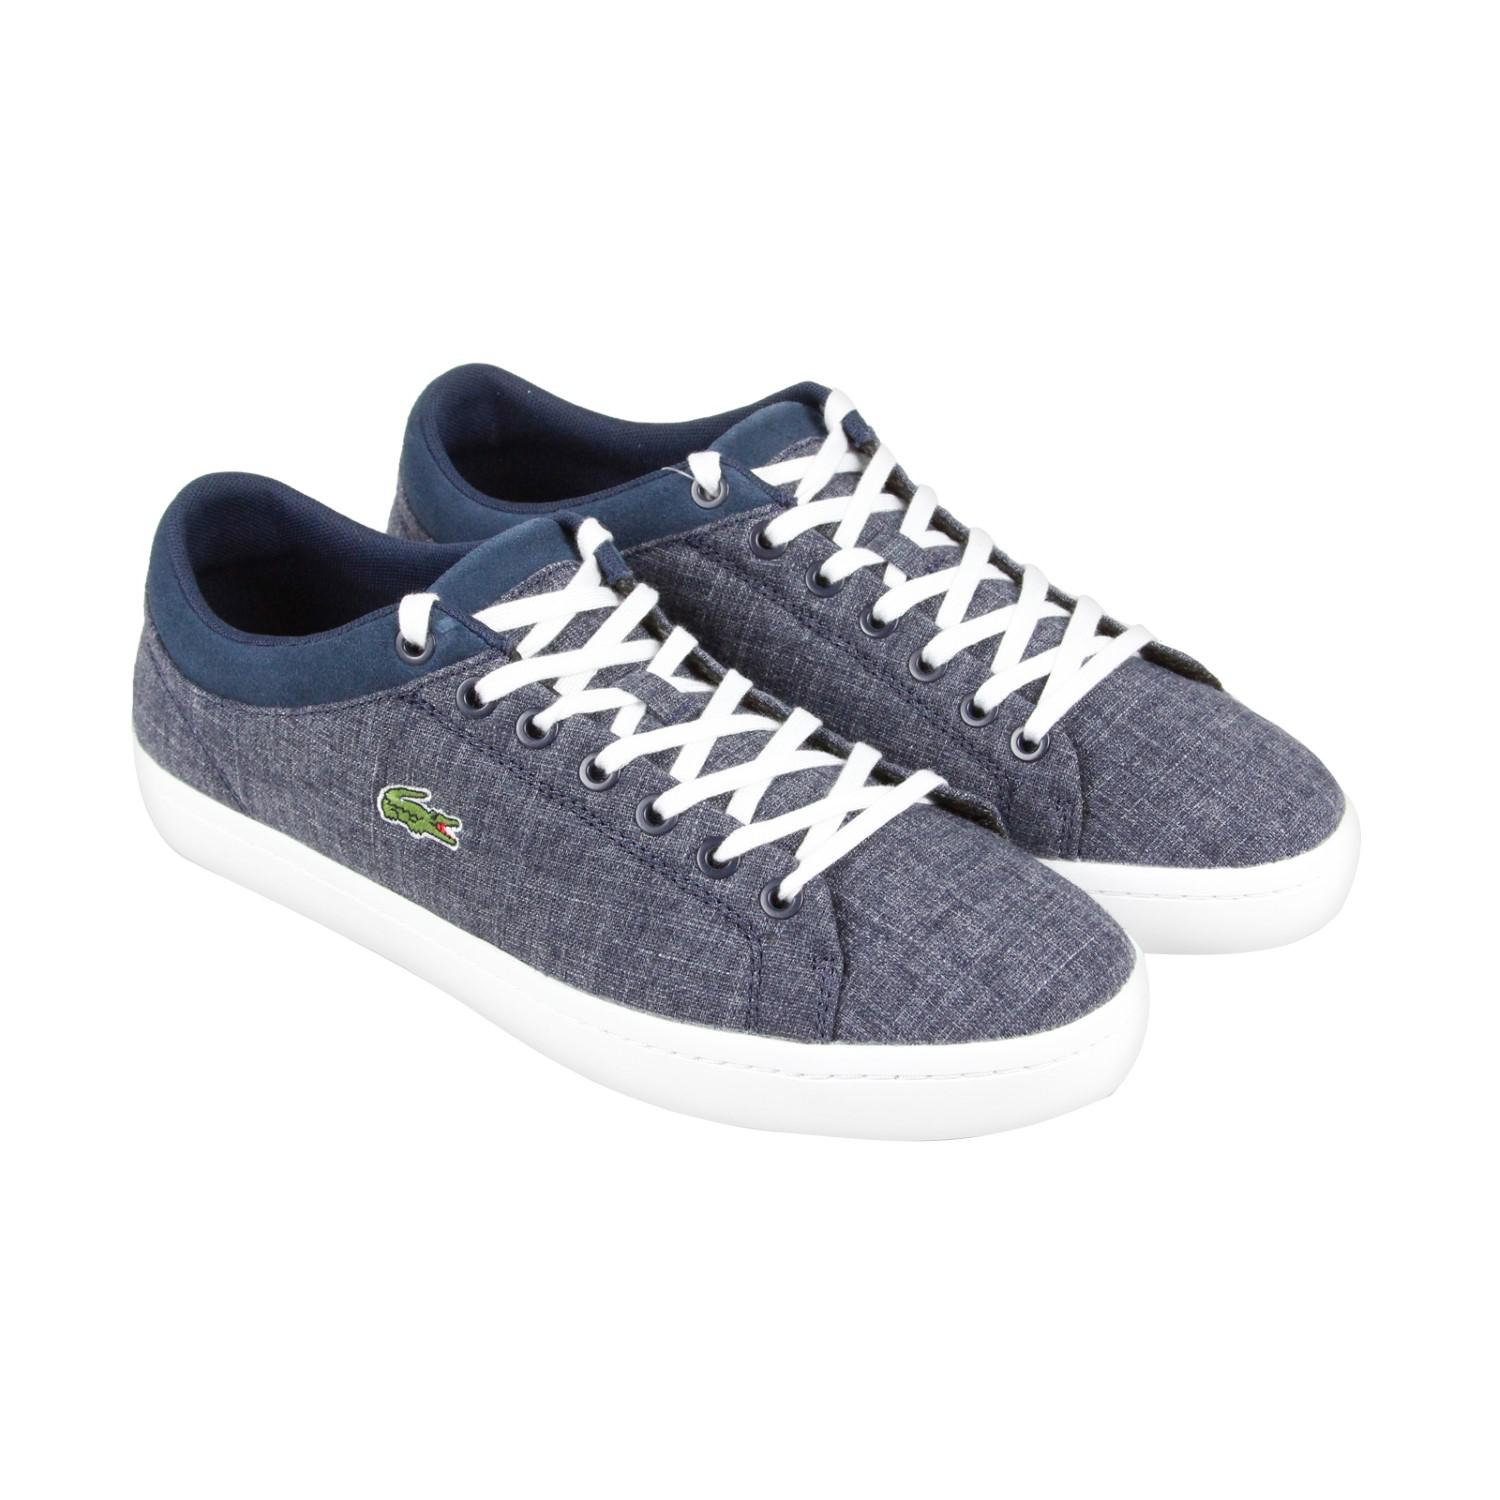 83d086963c97f Lyst - Lacoste Straightset Sp Navy Mens Lace Up Sneakers in Blue for Men